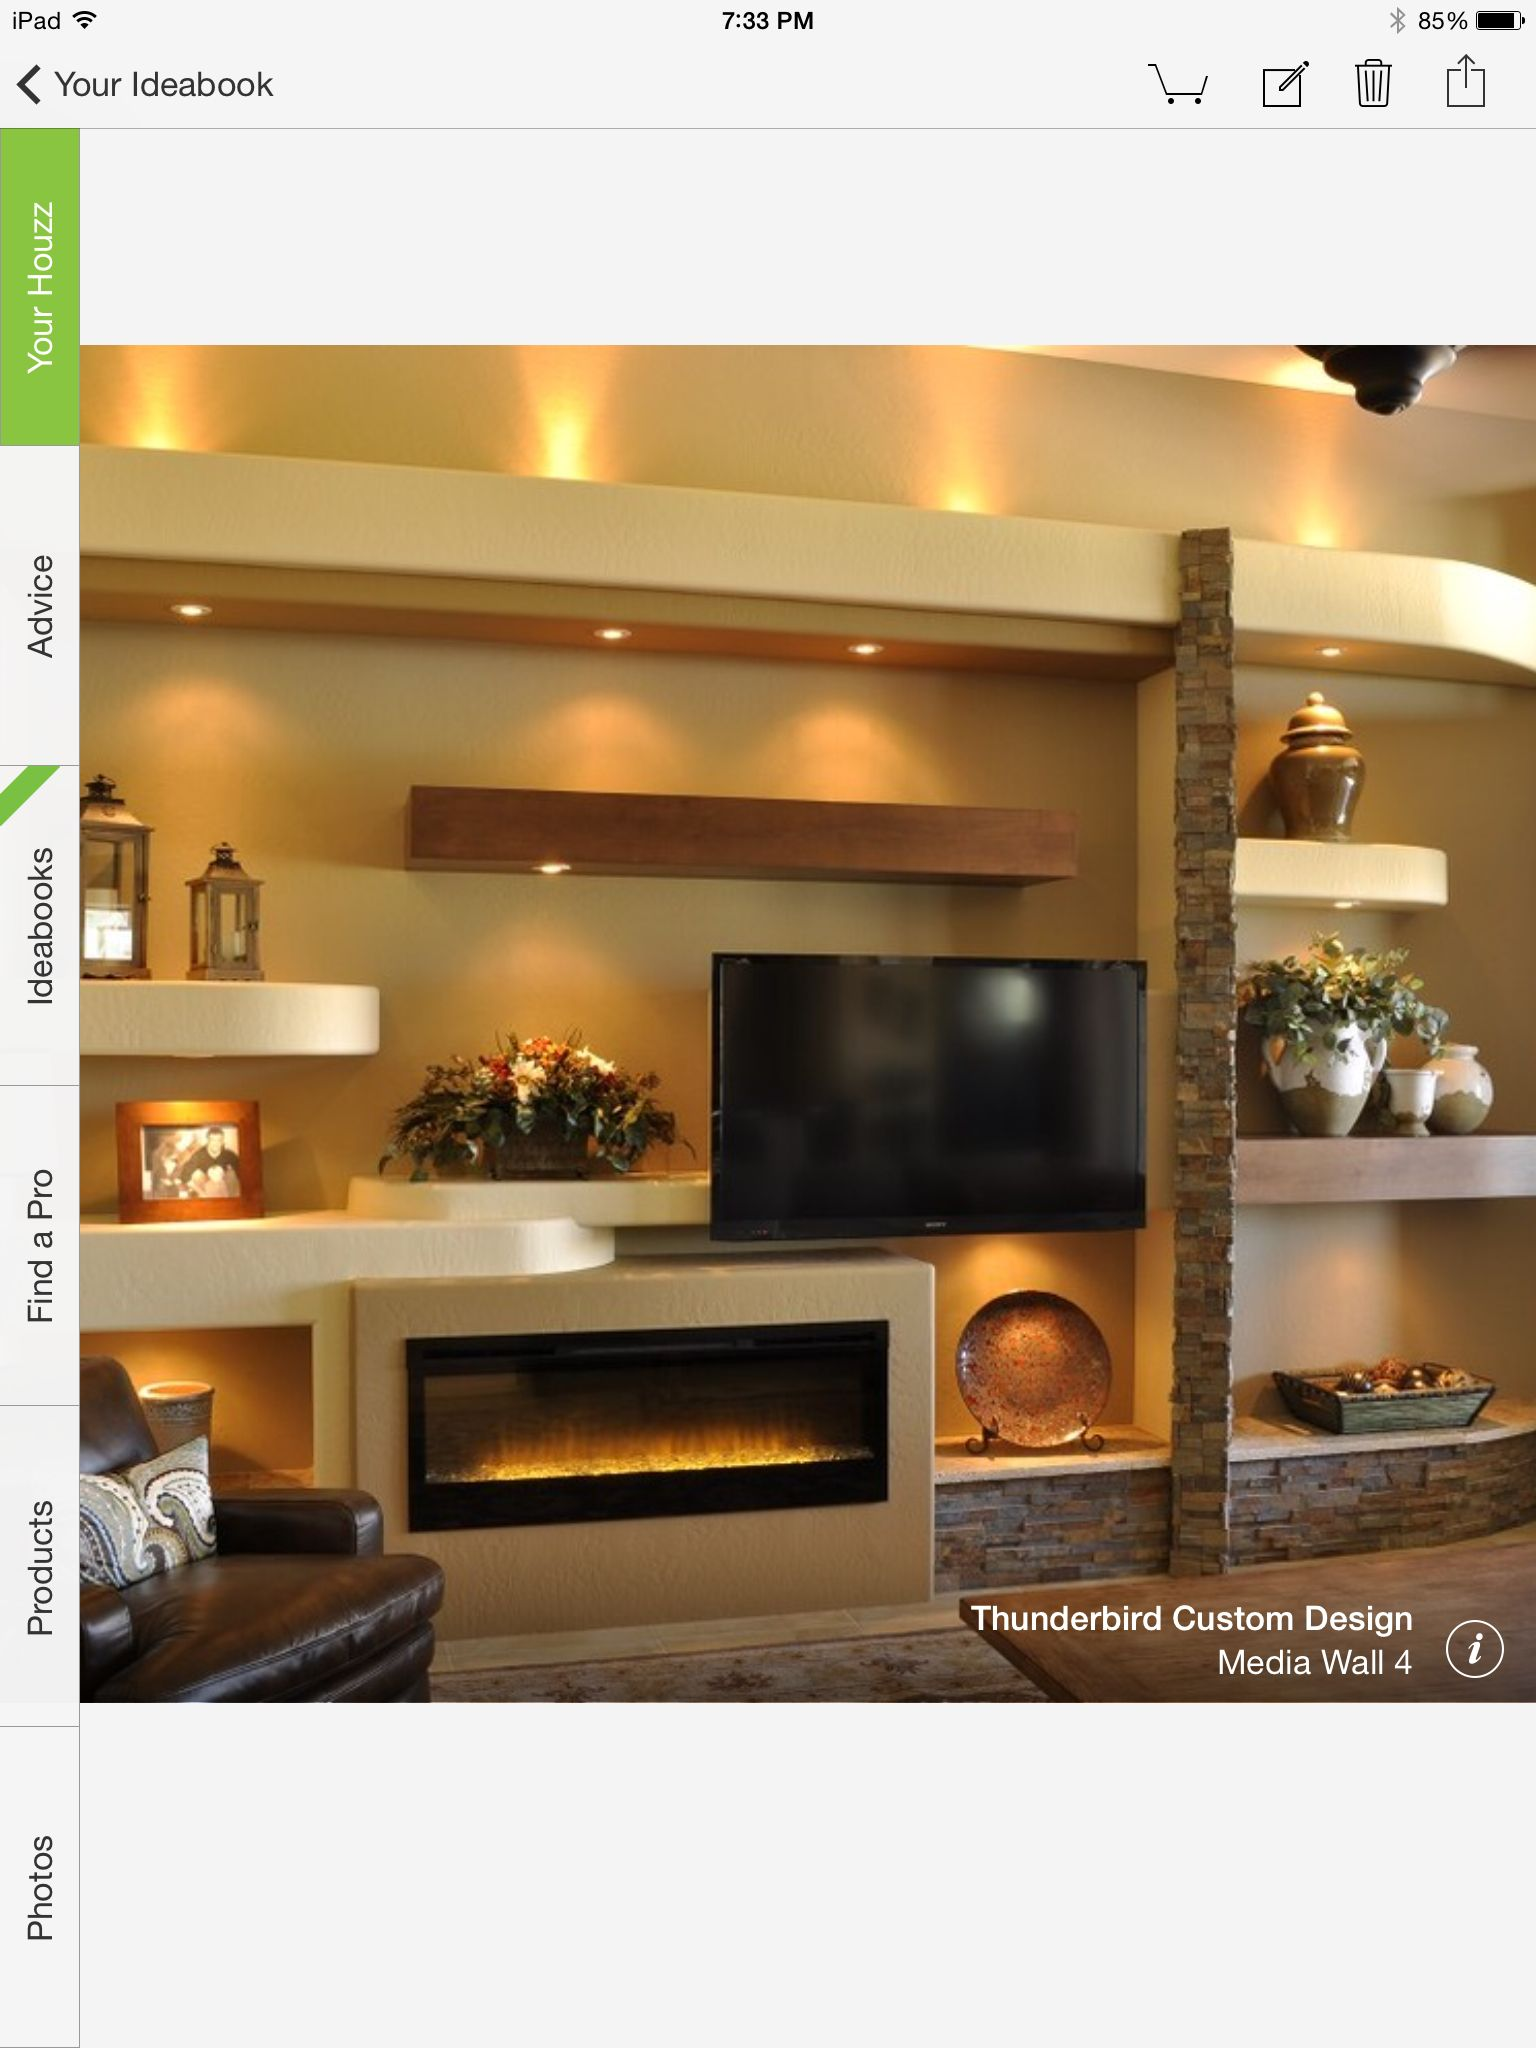 media wall designs Home Entertainment Centers Media Walls